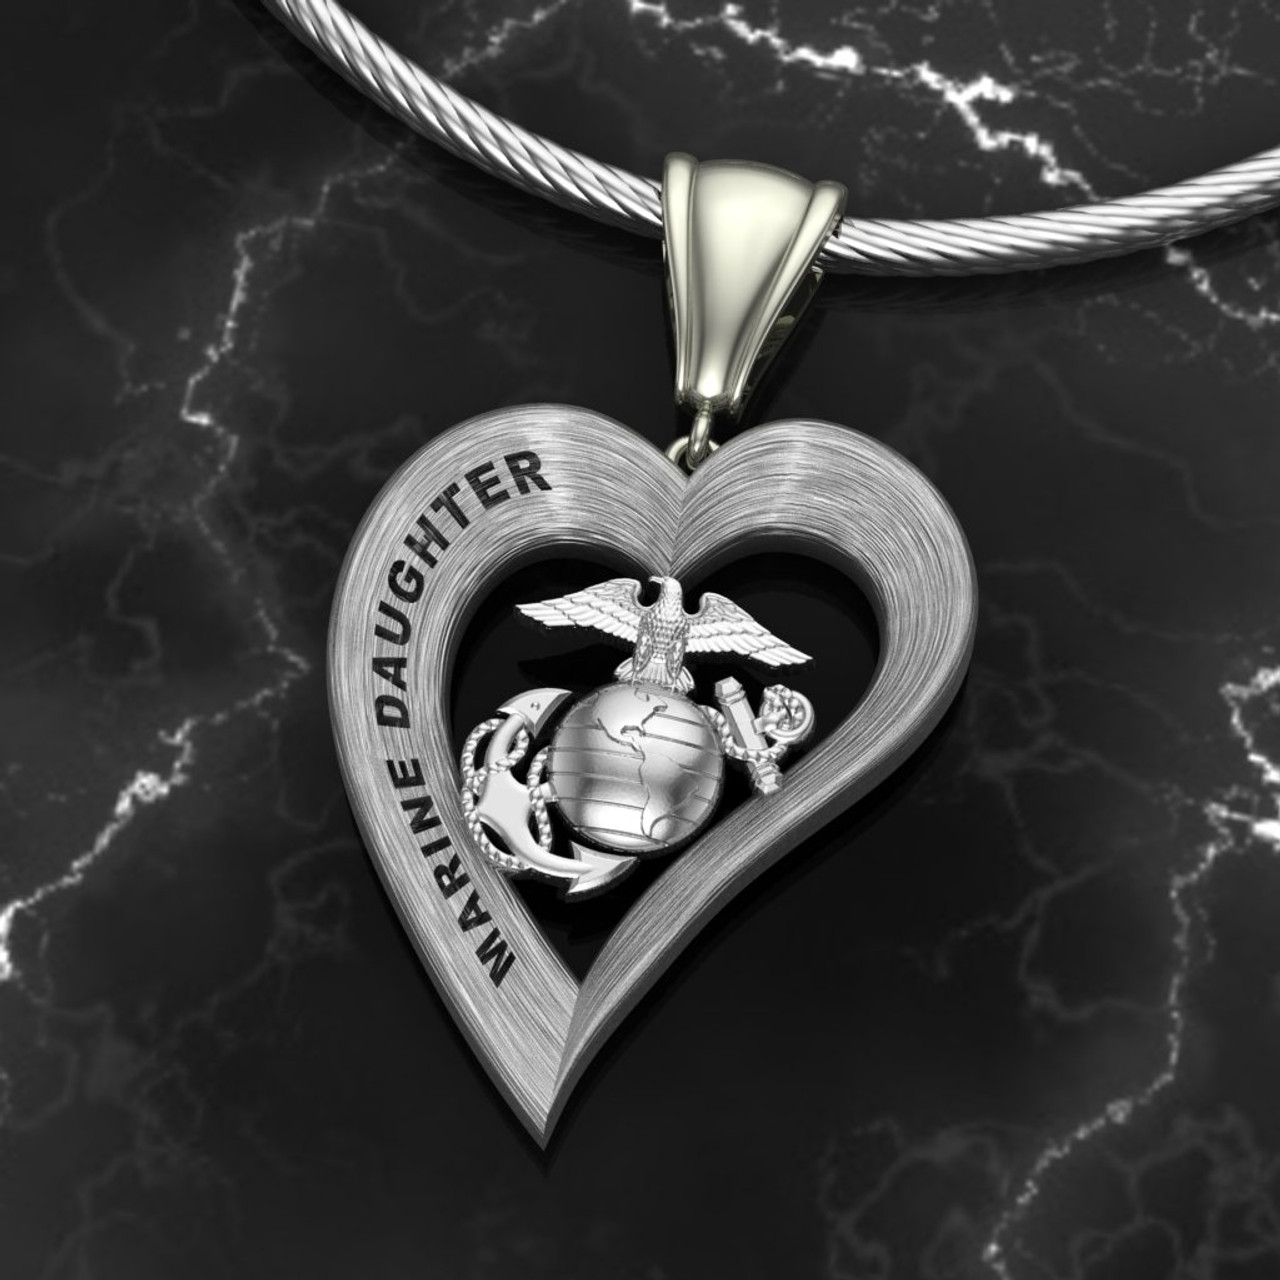 """Marine Daughter Silver Heart Pendant w/ Diamond Etching  w/18"""" Sterling Silver Chain  also available in 10k , 14k and 18k white or yellow gold  """"Made by Veterans for Veterans""""    100% Satisfaction Guaranteed"""